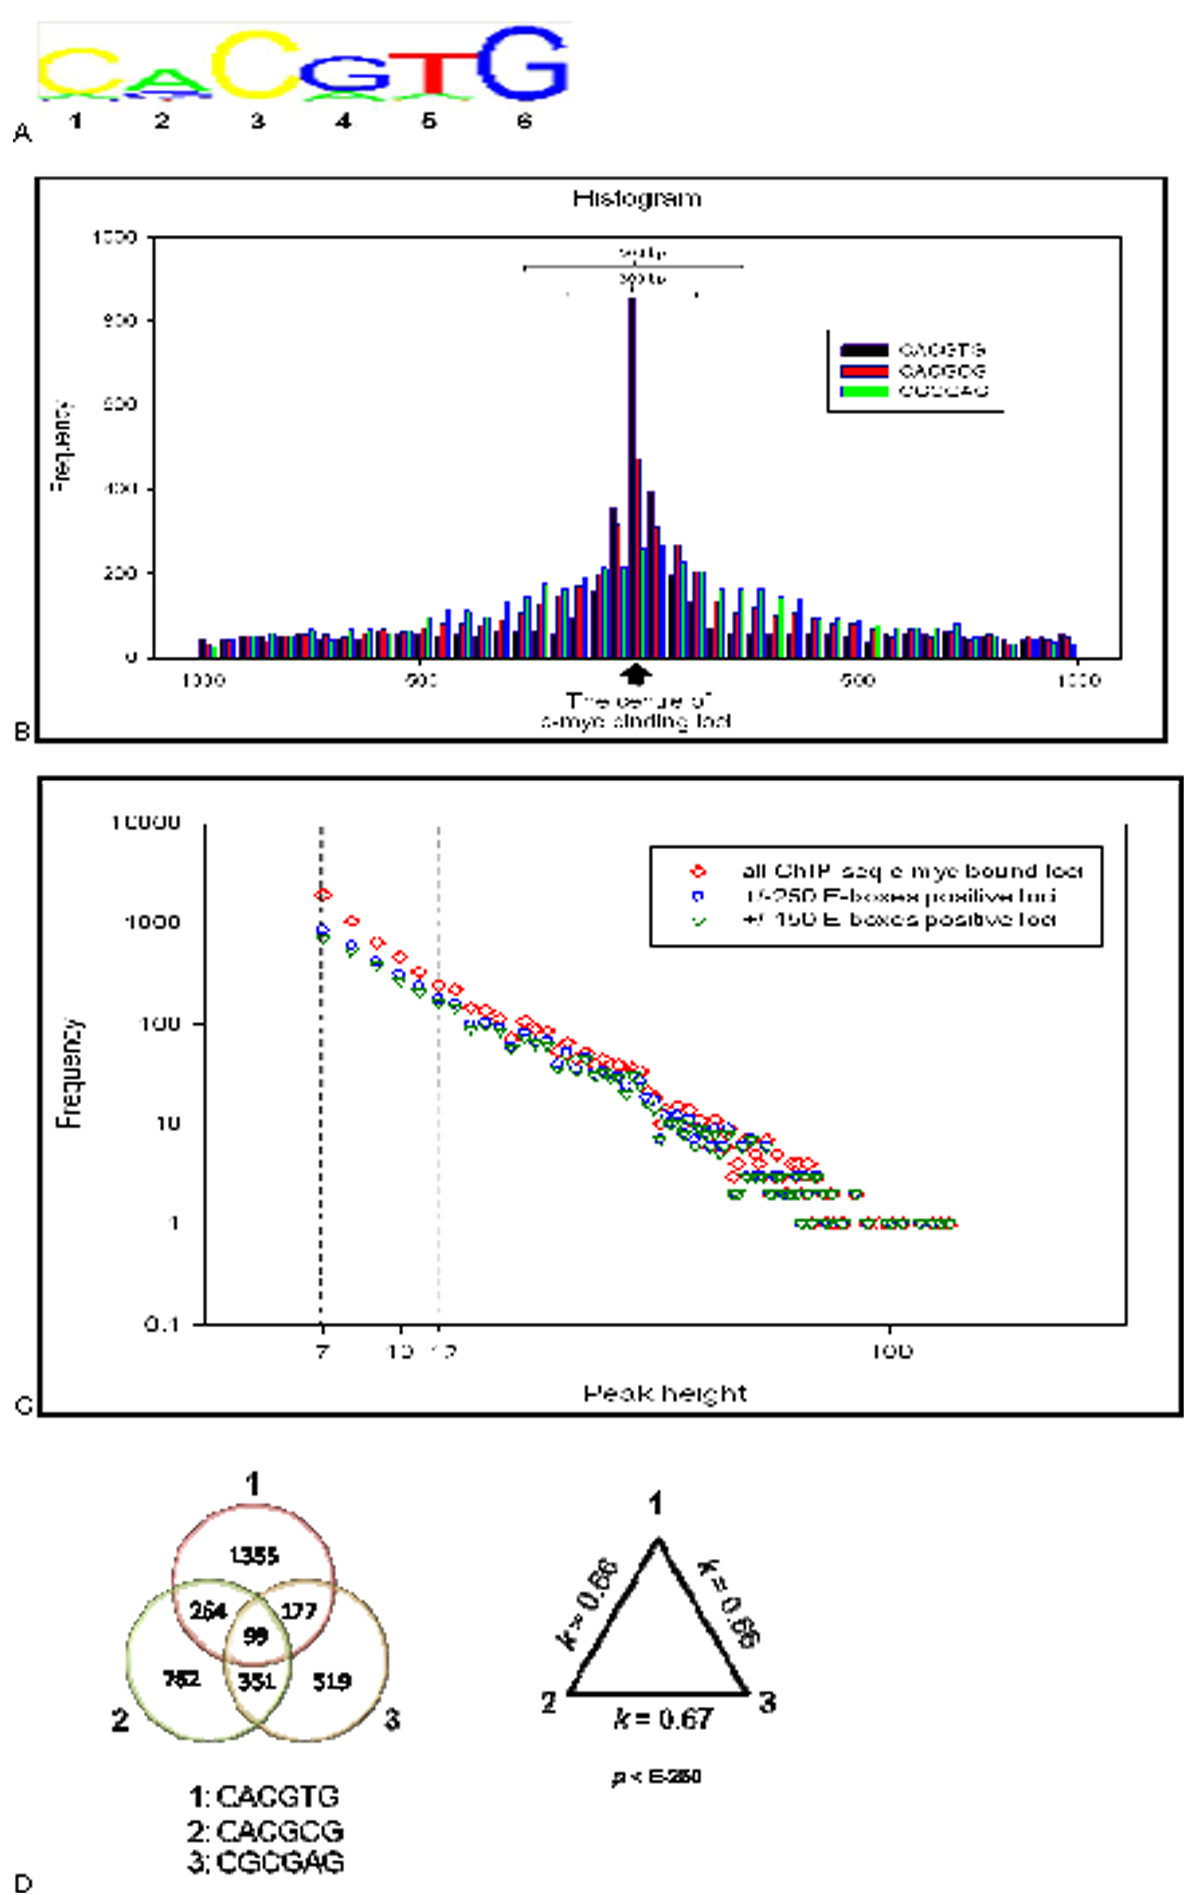 http://static-content.springer.com/image/art%3A10.1186%2F1471-2164-11-S1-S12/MediaObjects/12864_2010_Article_3136_Fig5_HTML.jpg